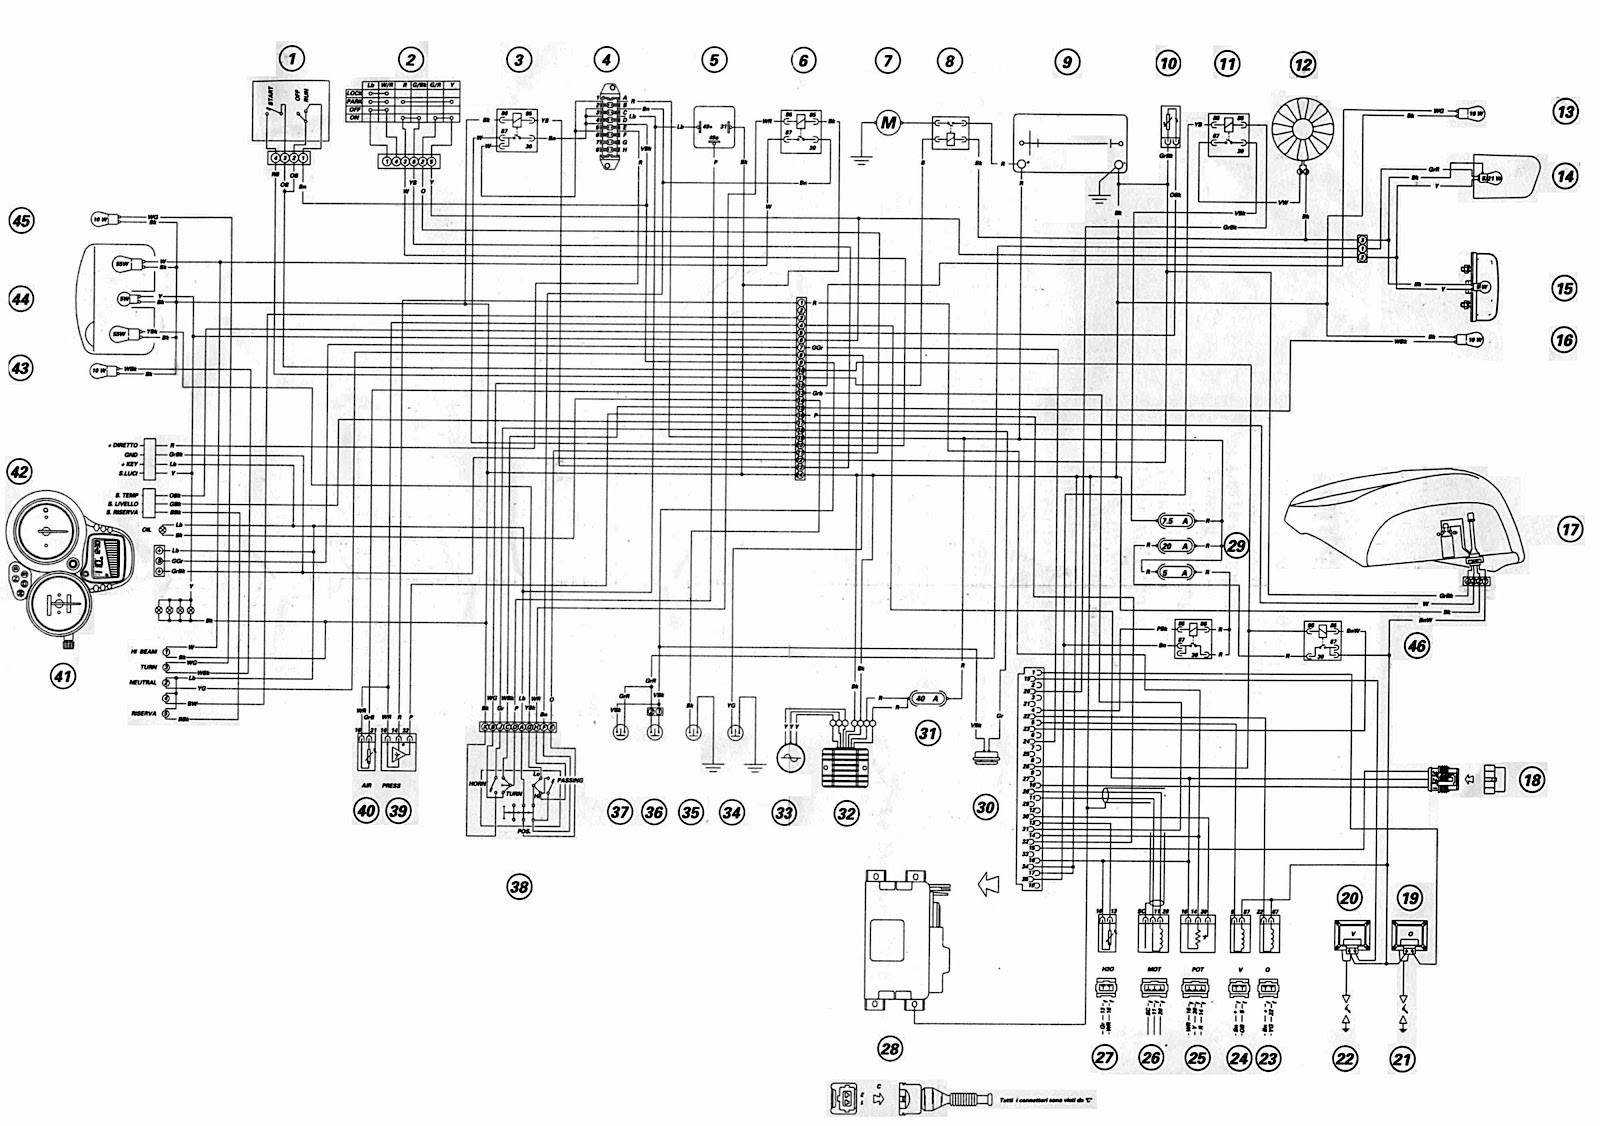 2008 gsxr 600 wiring diagram 2004 gsxr 600 headlight wiring diagram - somurich.com 2006 gsxr 600 wiring diagram us #13